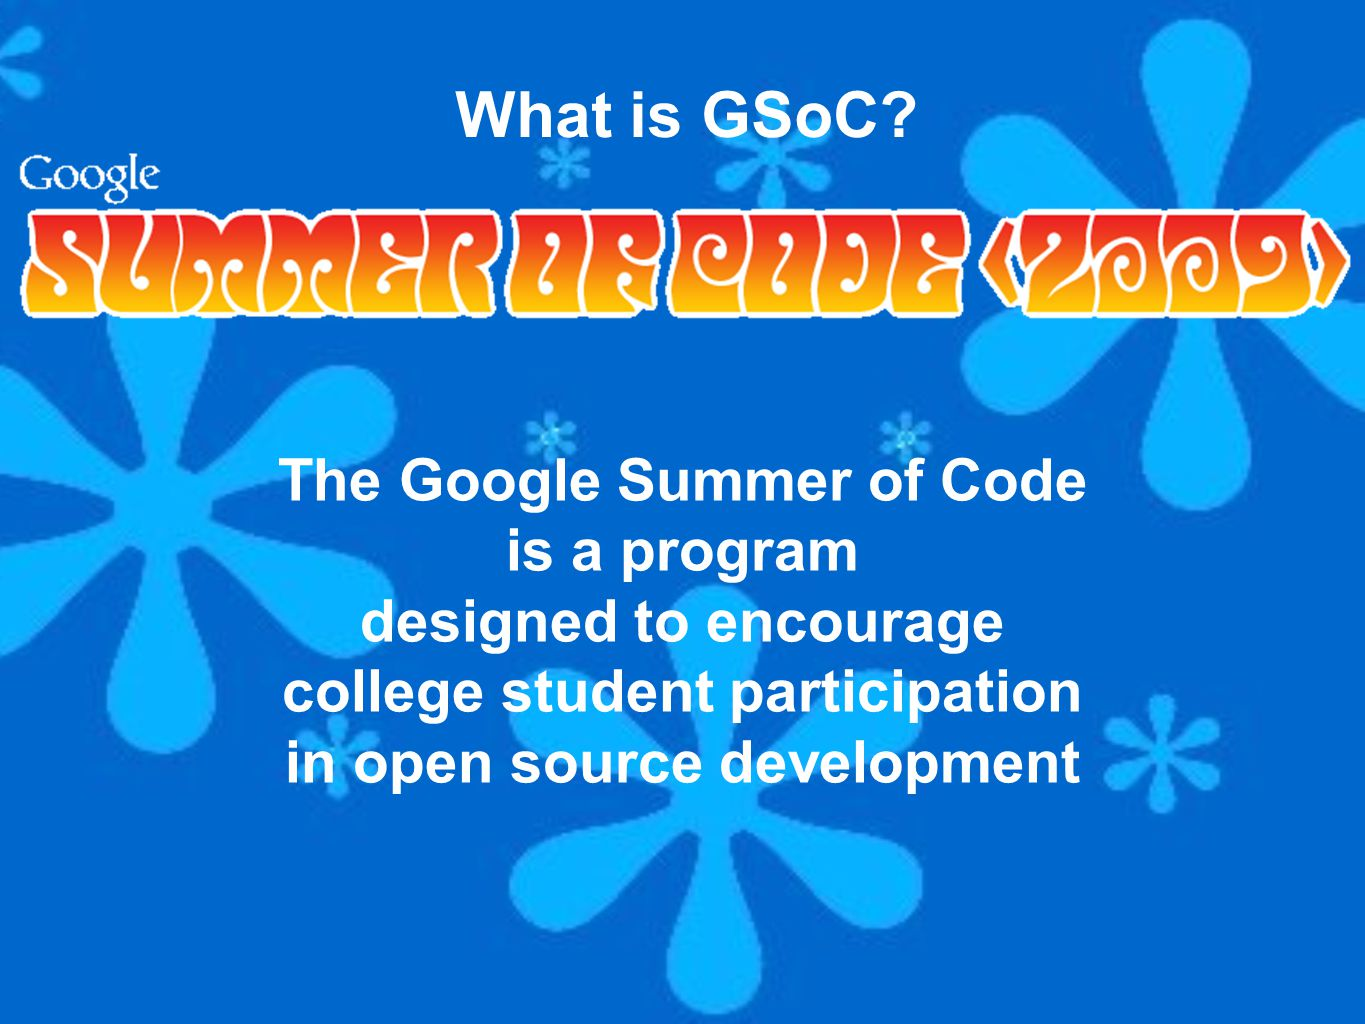 The Google Summer of Code is a program designed to encourage college student participation in open source development What is GSoC